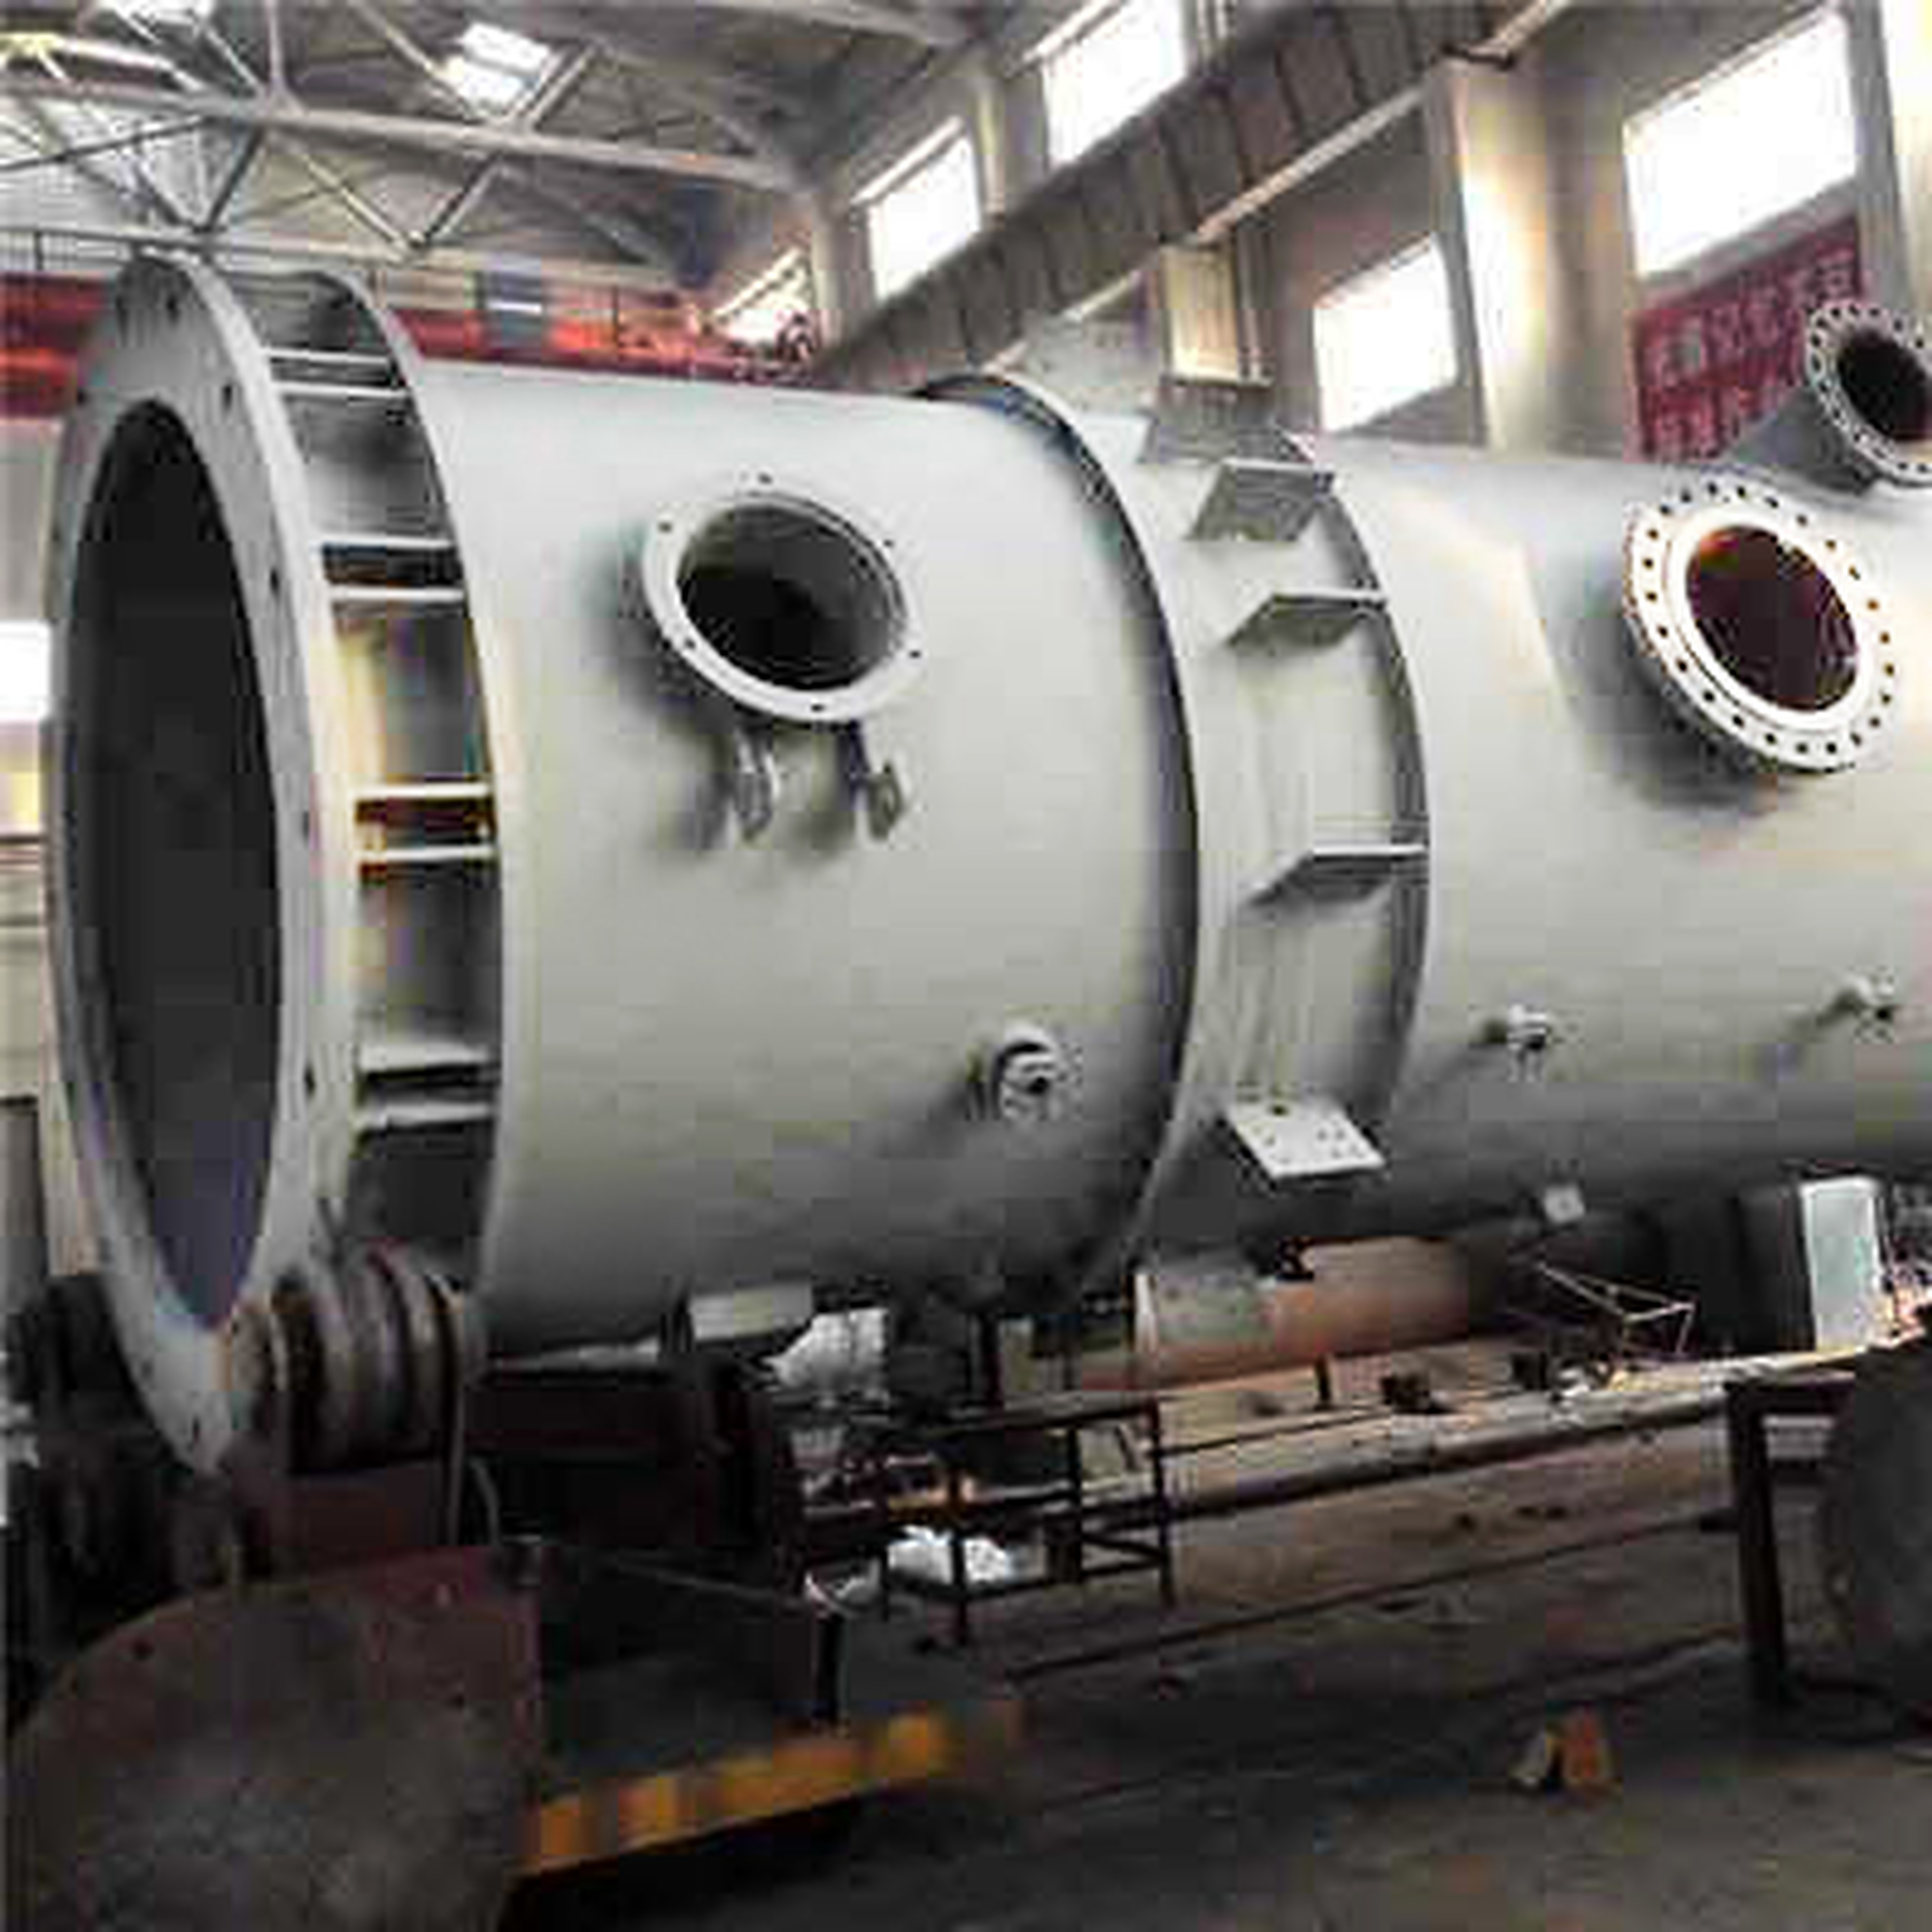 Our steam boiler systems are designed and manufactured for troublefree operation with Clayton experience and expertise call 01928 579009